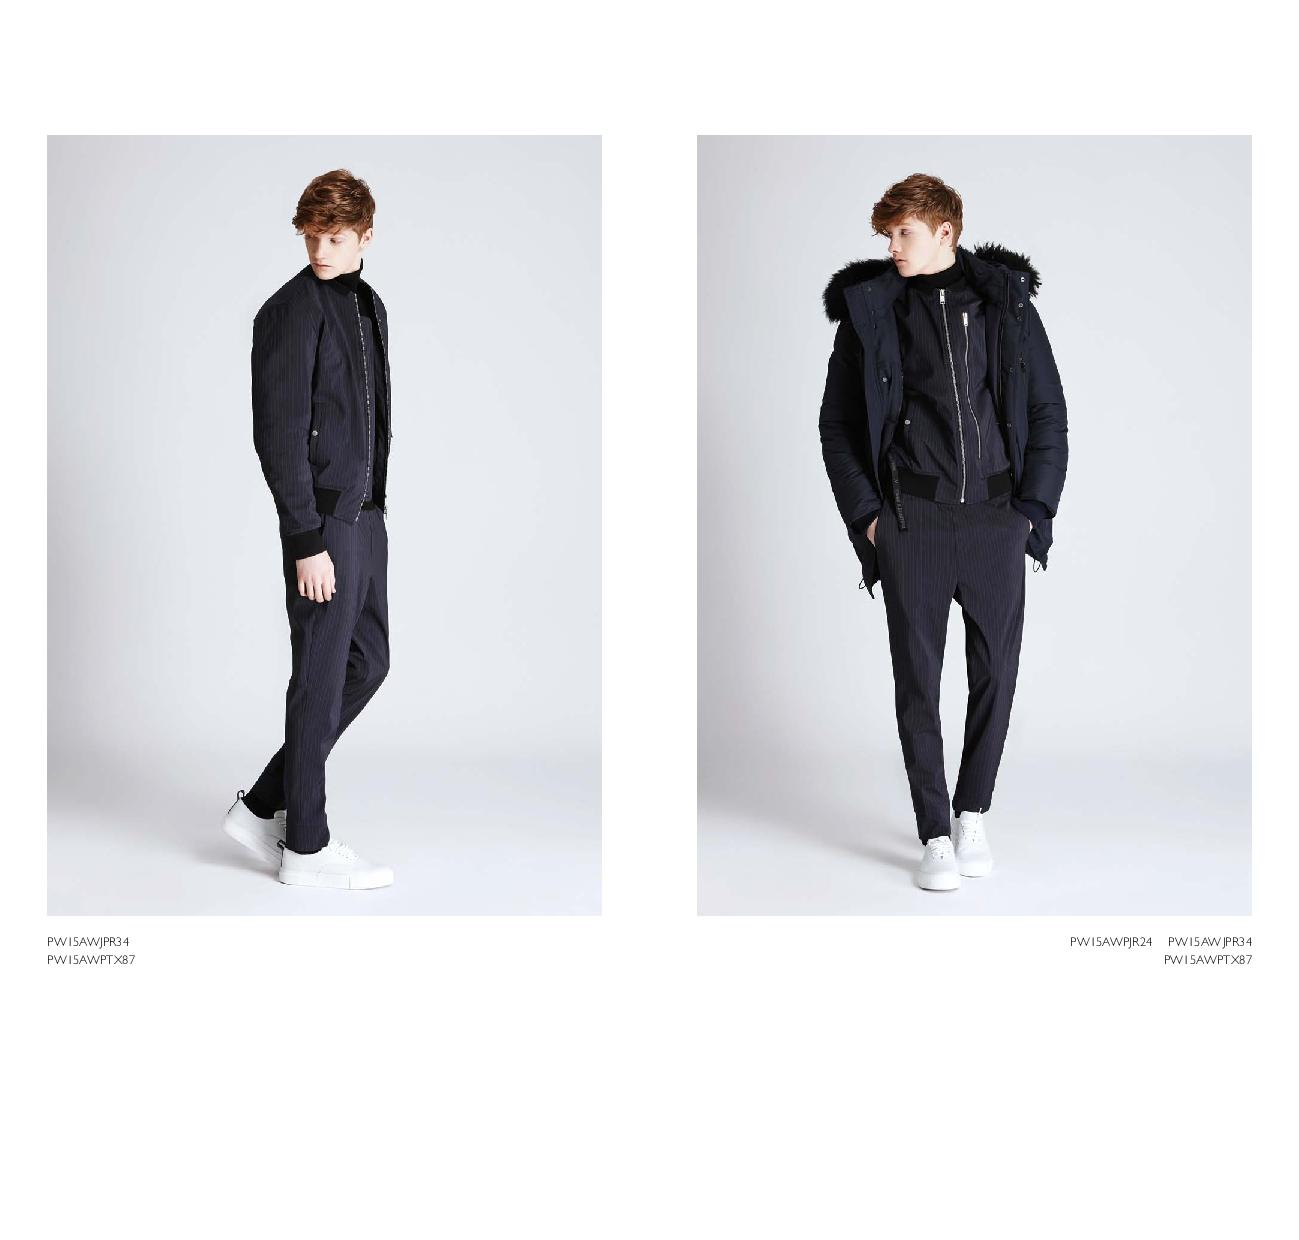 PLAC_15AW_LOOKBOOK (4)-page-009